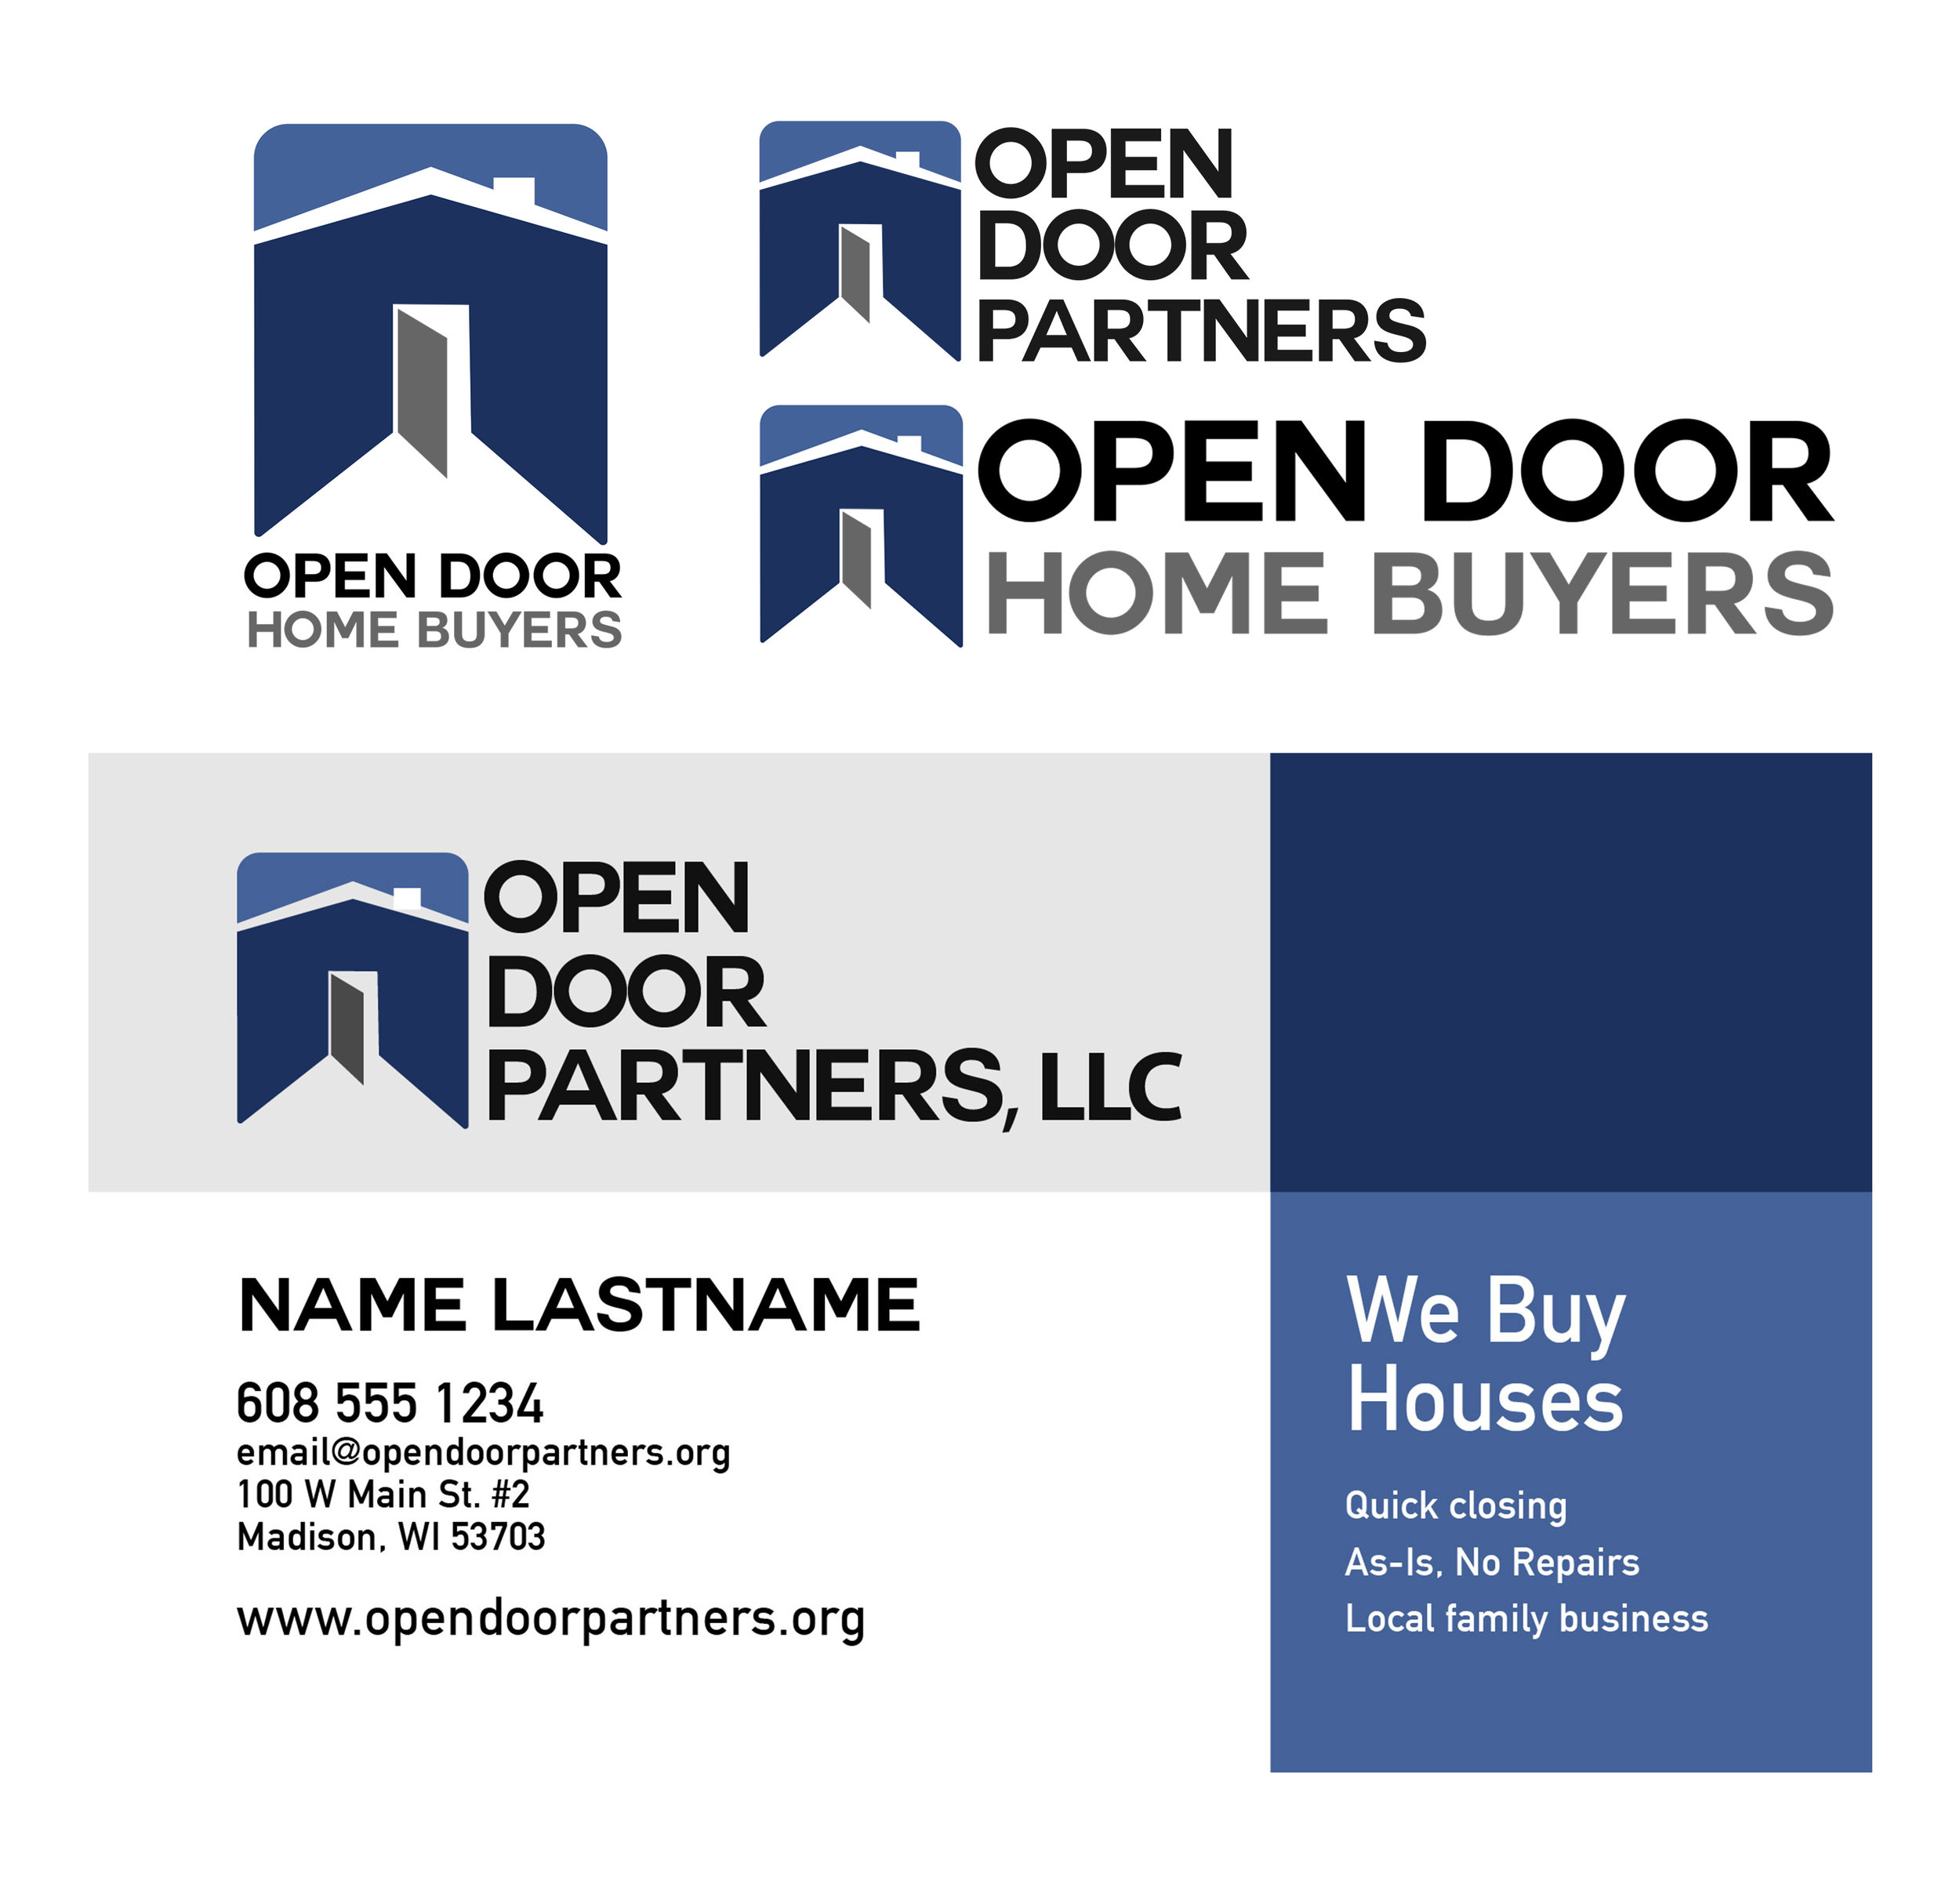 Open Door Partners - Business cards and logo design for real estate investment company